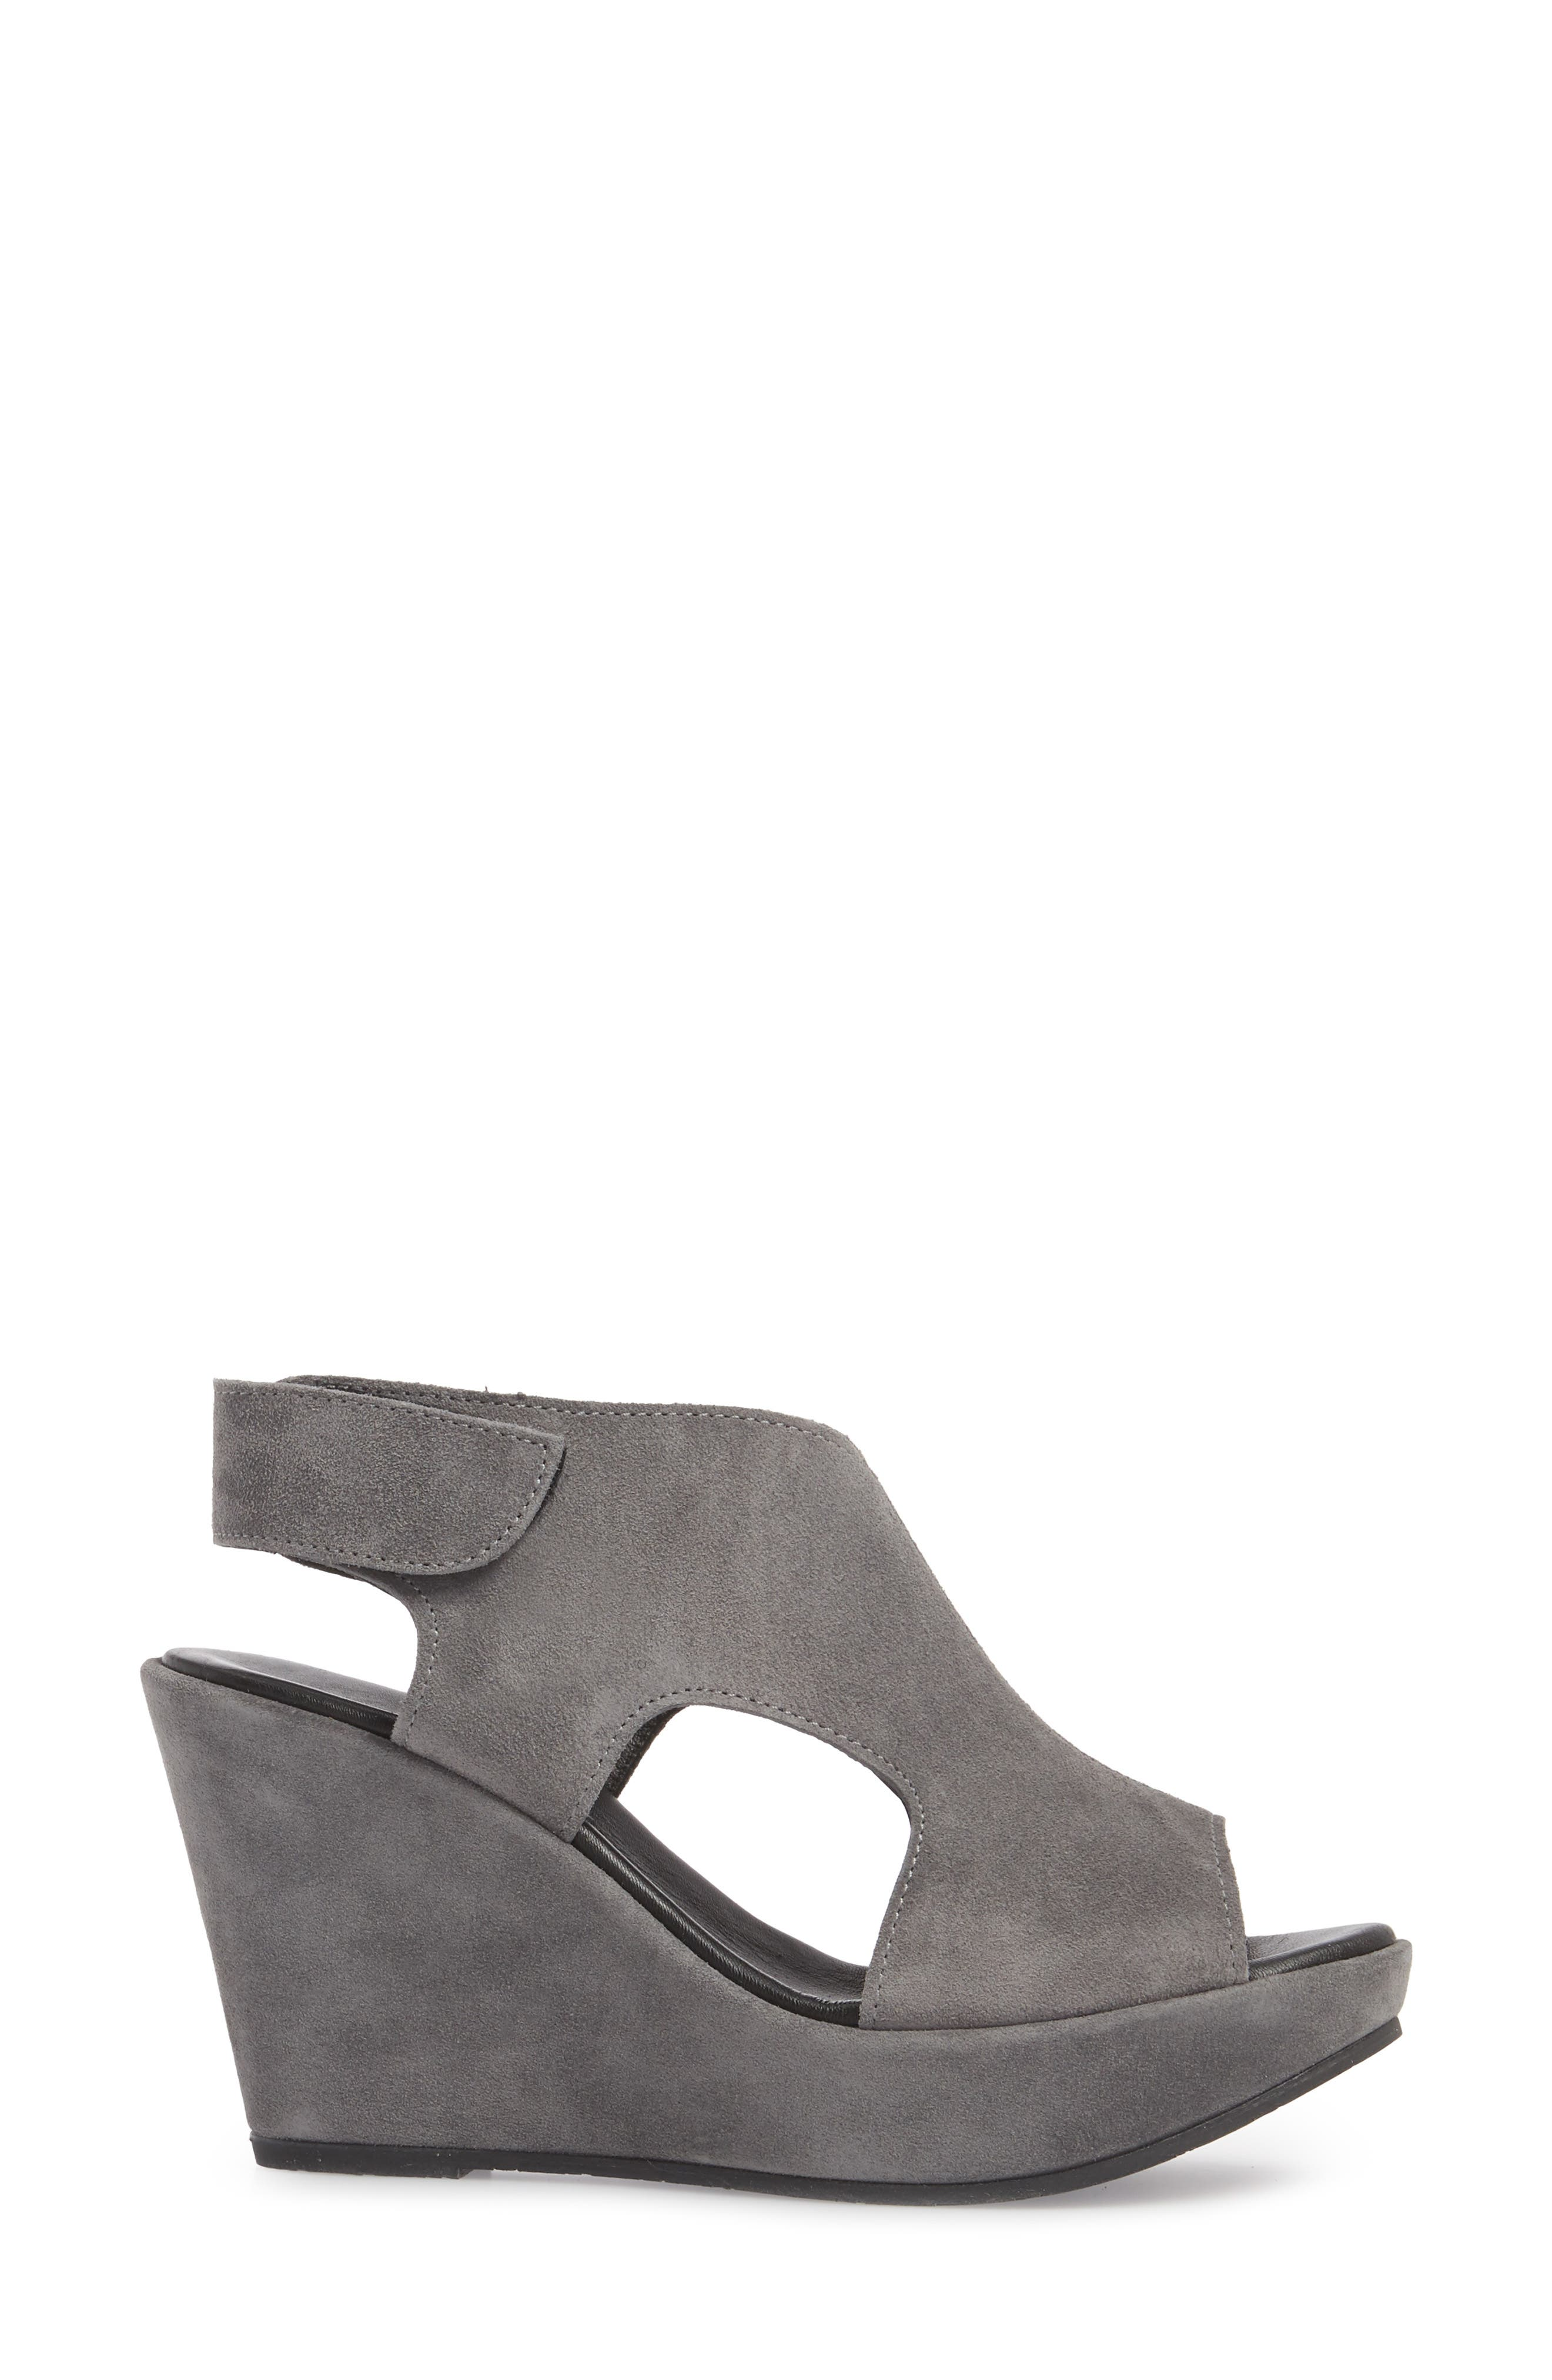 Reed Wedge Sandal,                             Alternate thumbnail 3, color,                             029